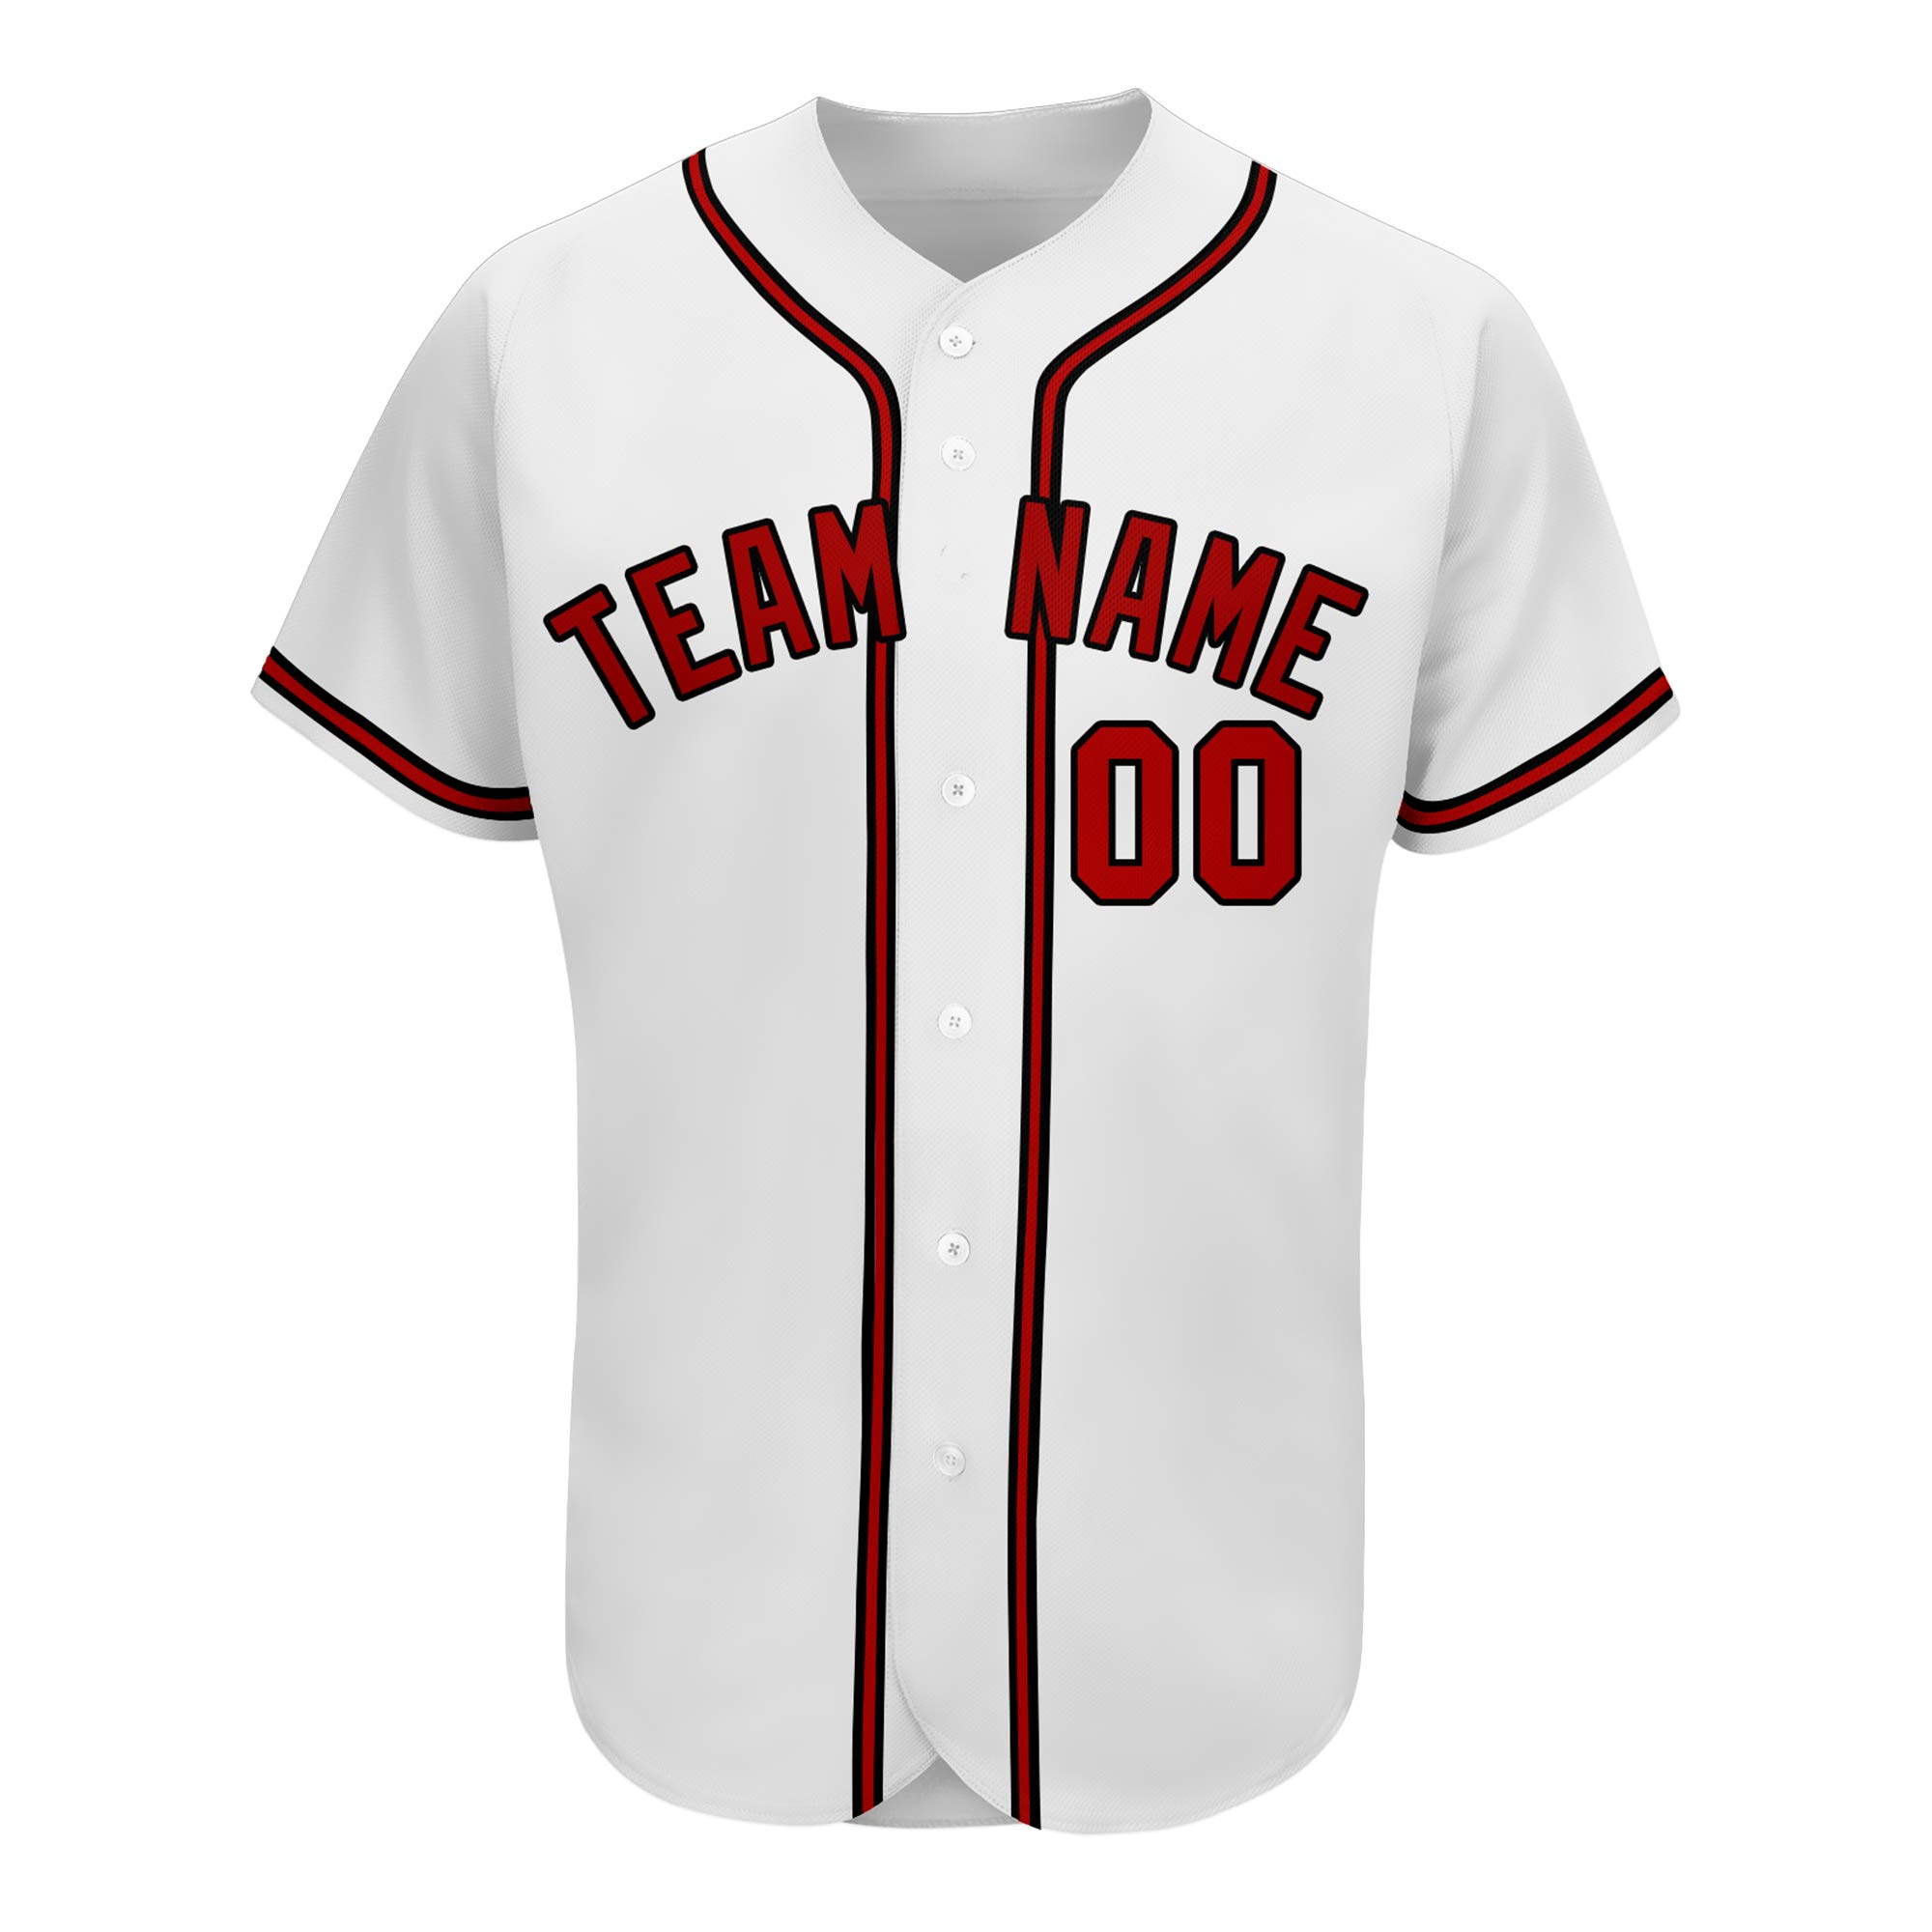 Custom Baseball Jersey with Embroidered Team Player Name Numbers Big Size Breathable for Men Women Youth